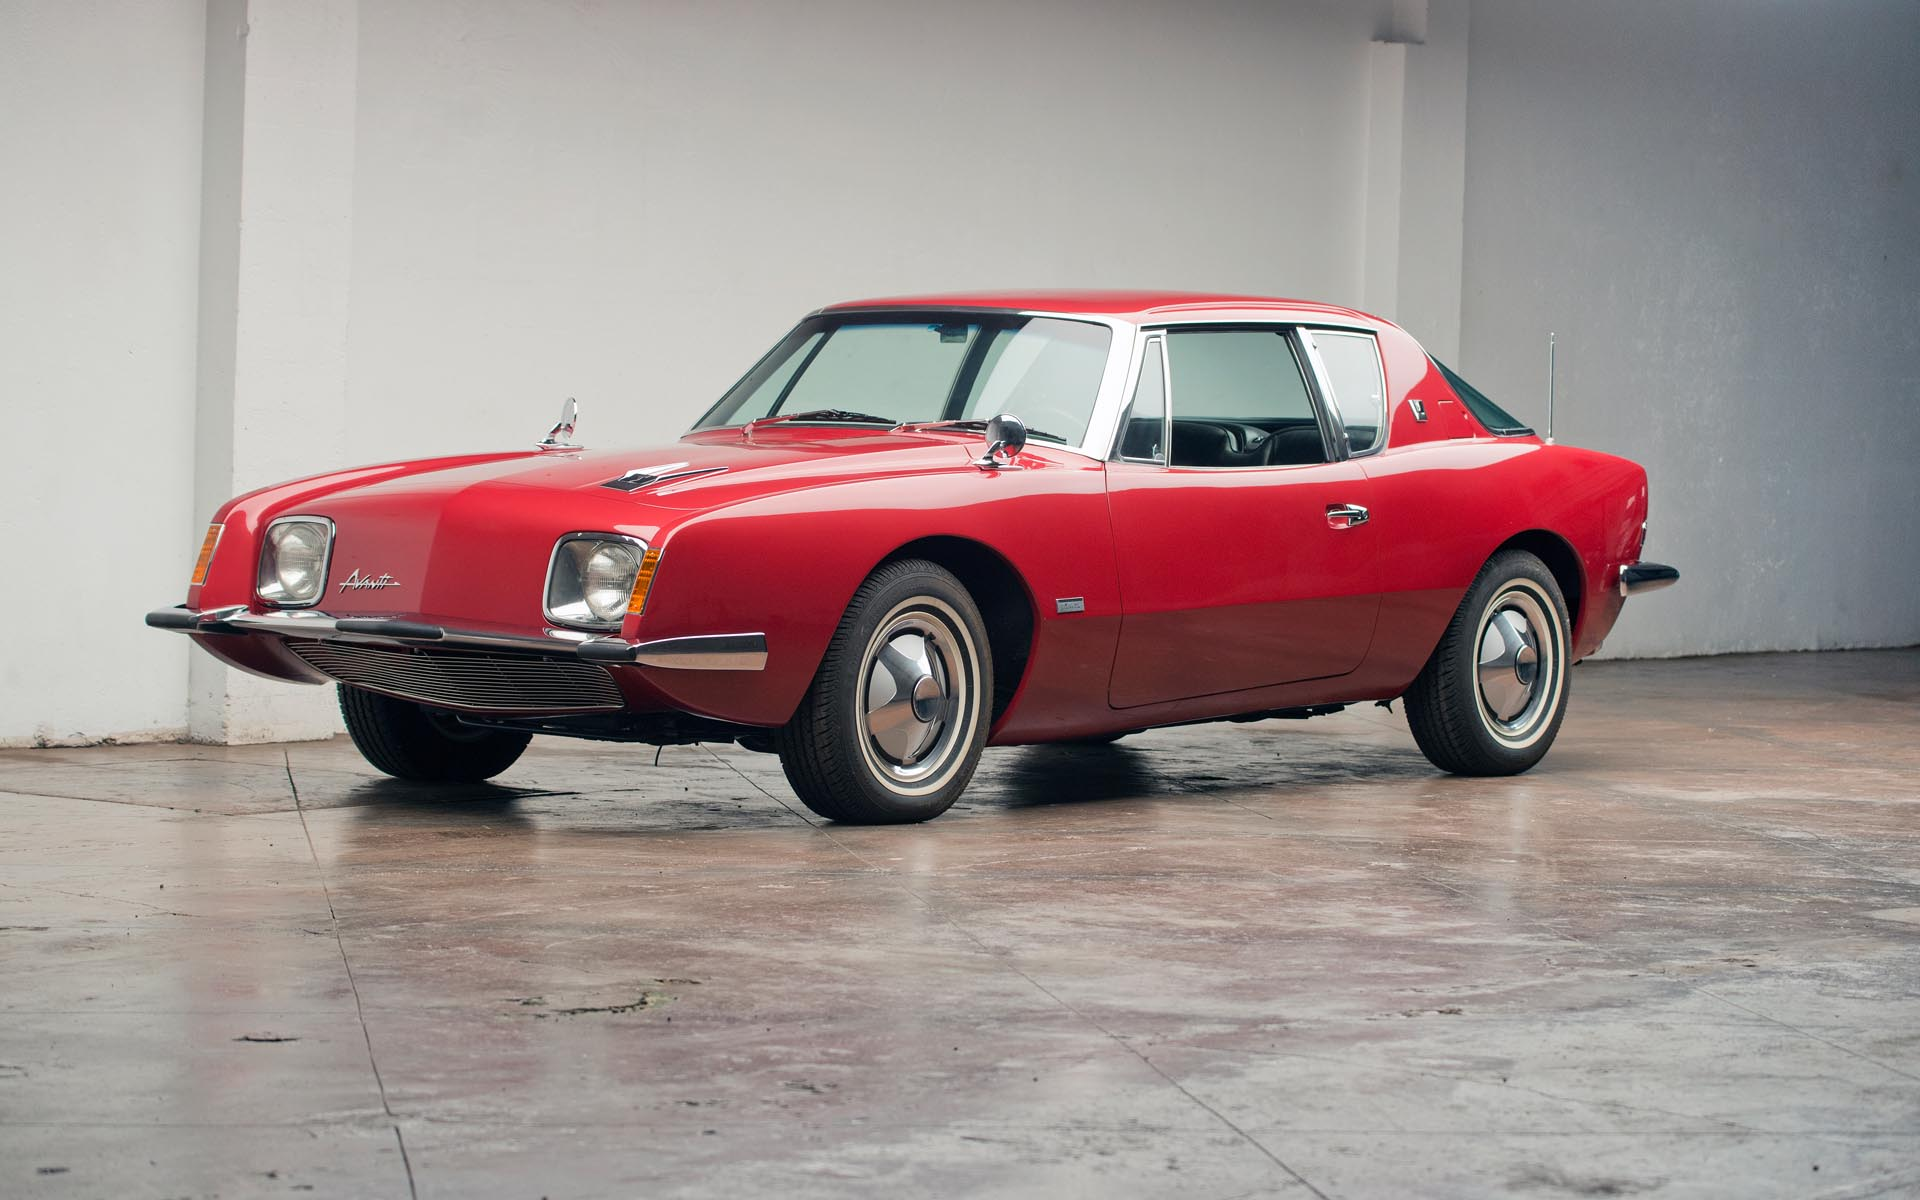 1964 Studebaker Avanti R2 Supercharged Coupe